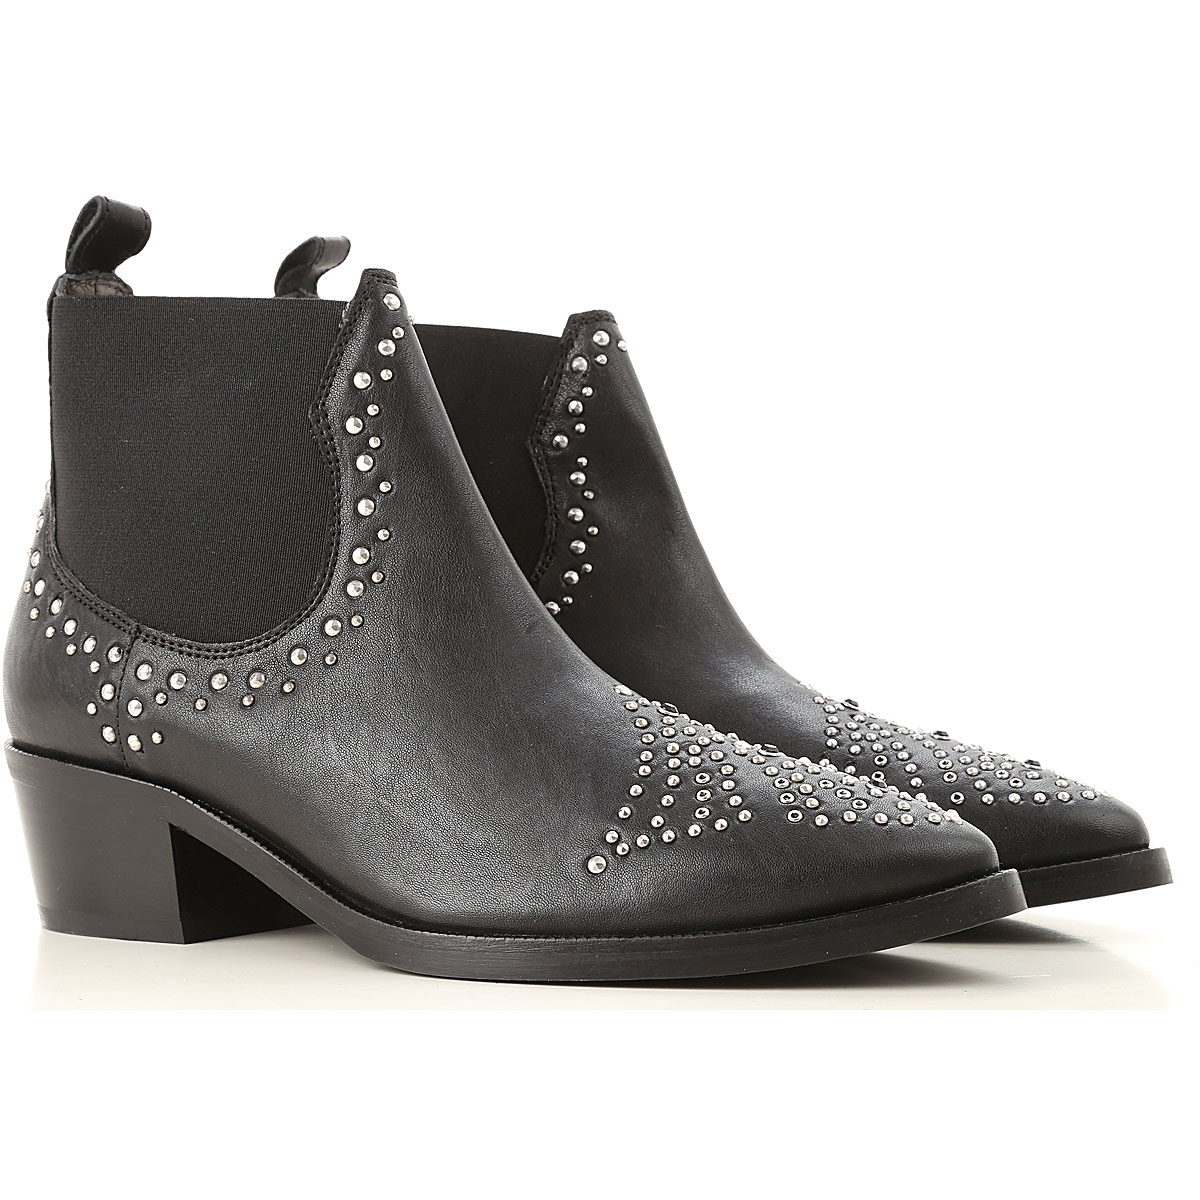 Janet & Janet Boots for Women Booties On Sale USA - GOOFASH